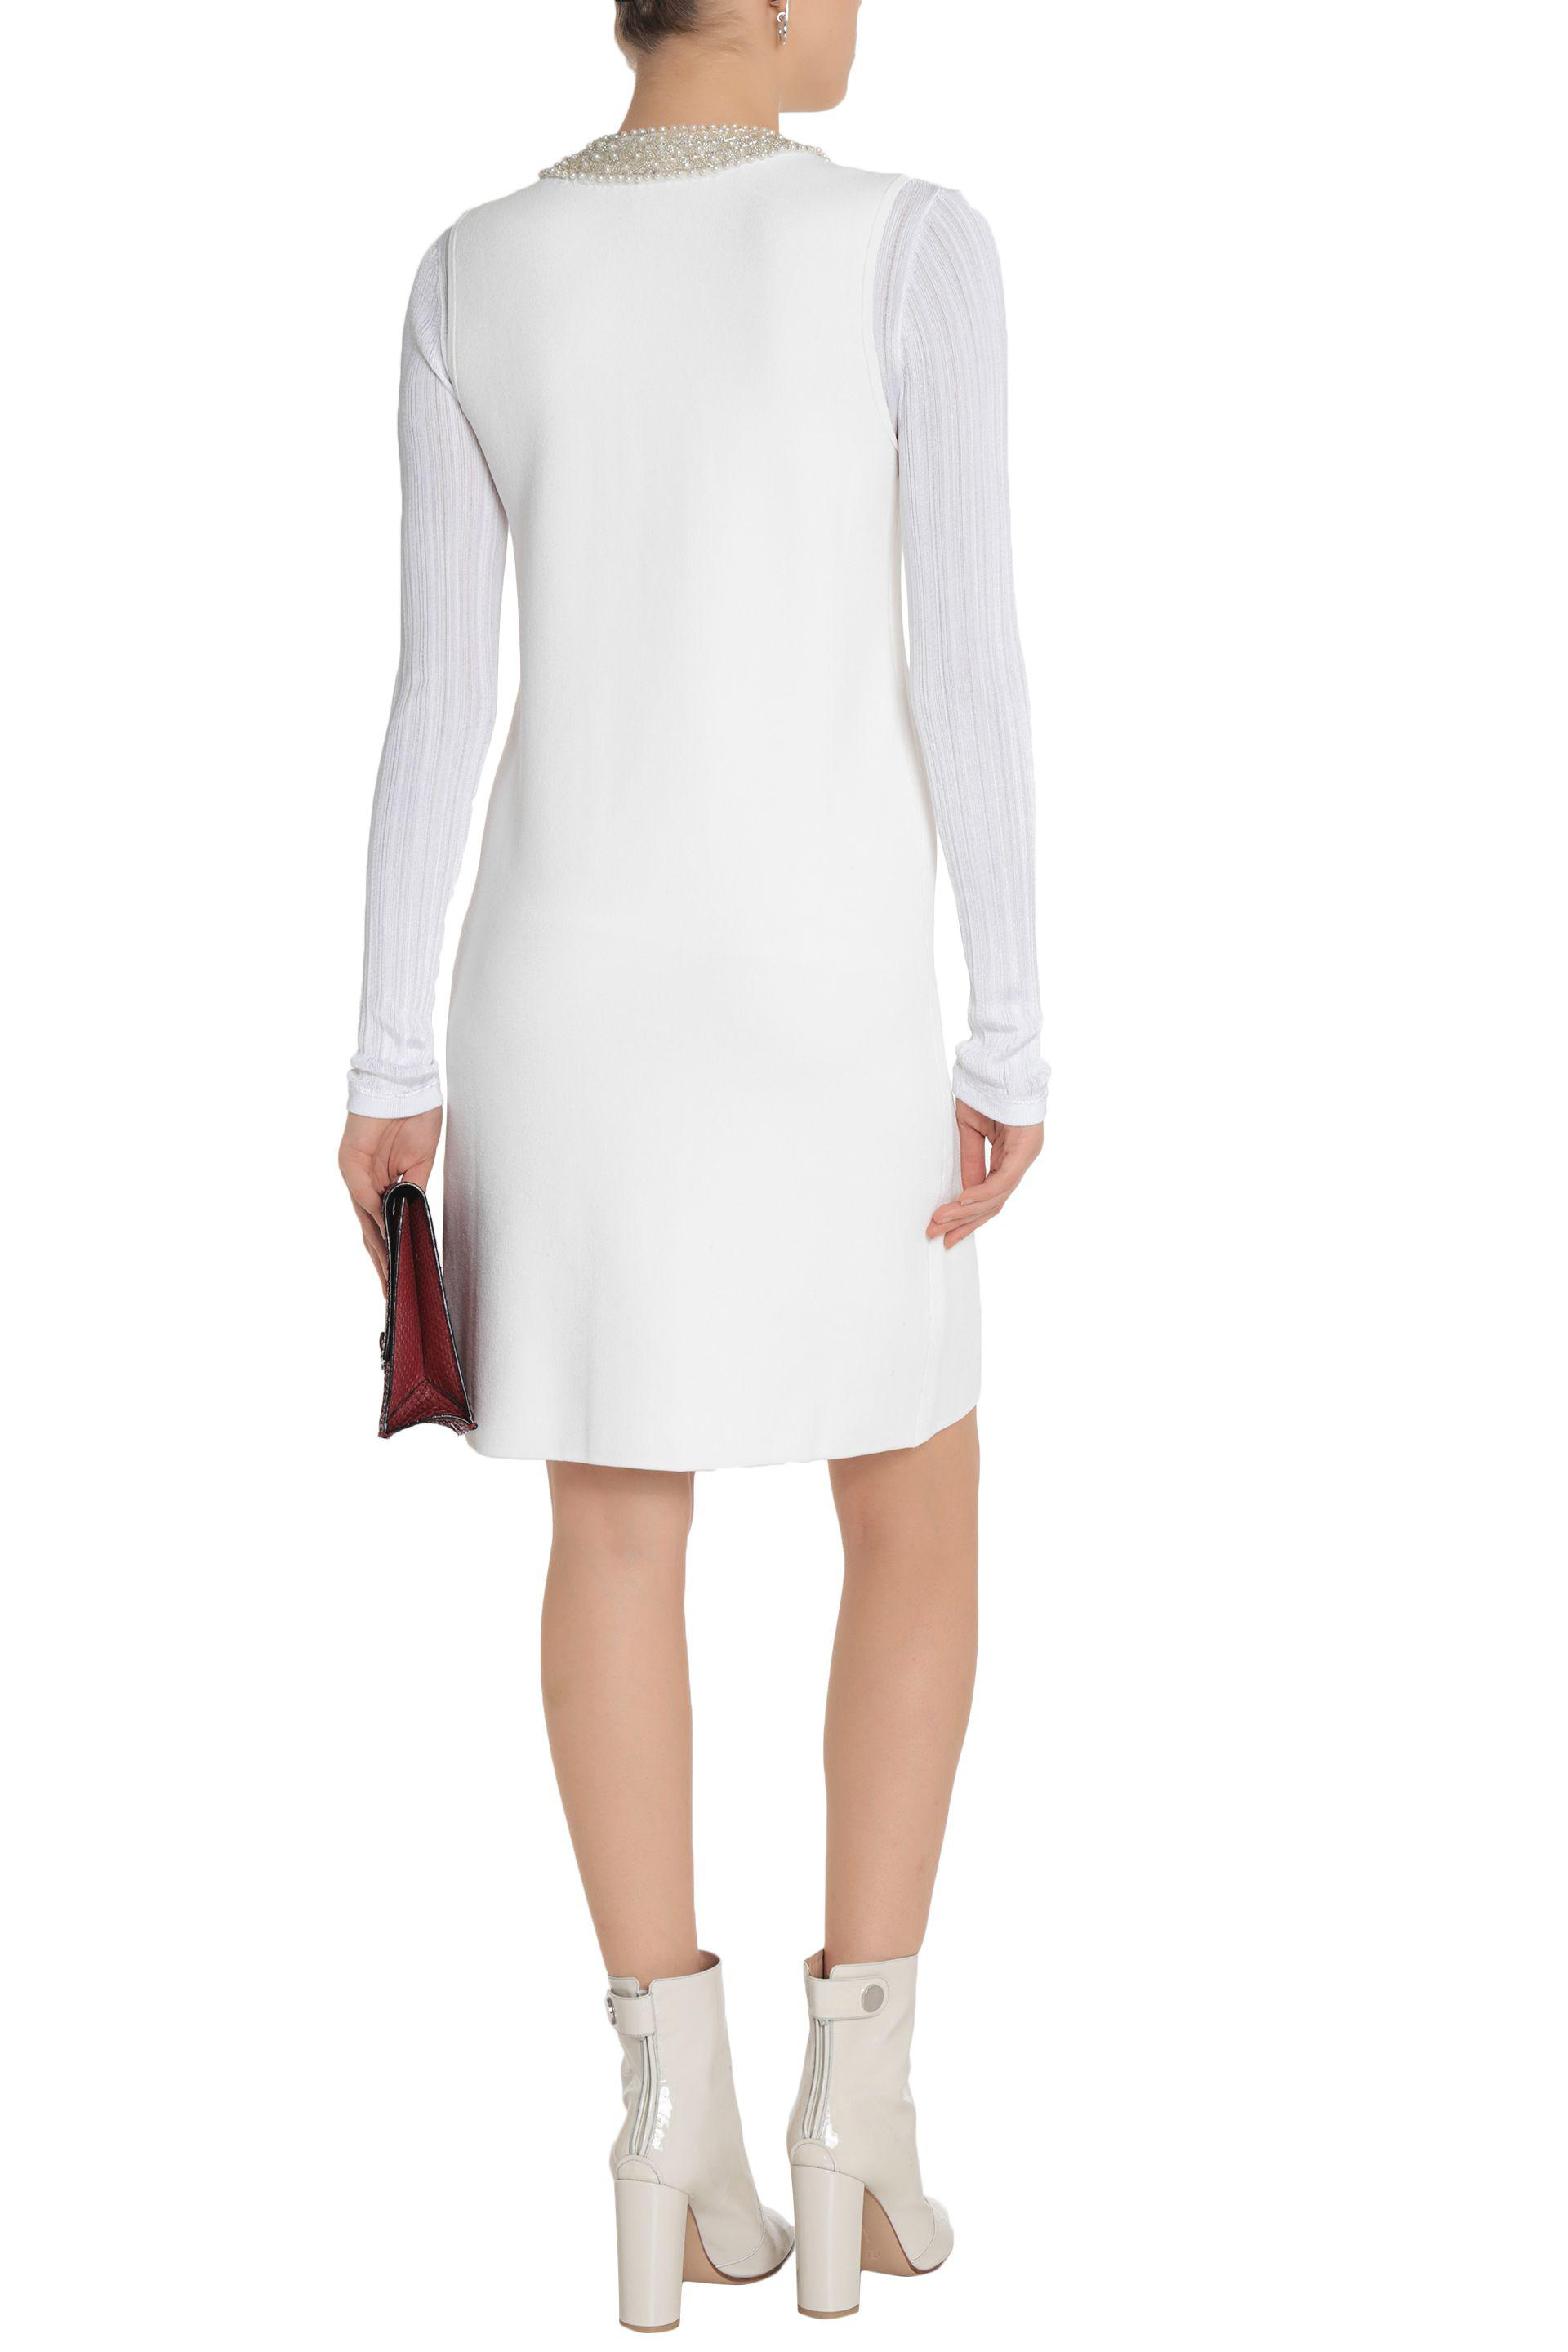 Ganni Woman Loras Embellished Stretch-knit Dress White Size S Ganni